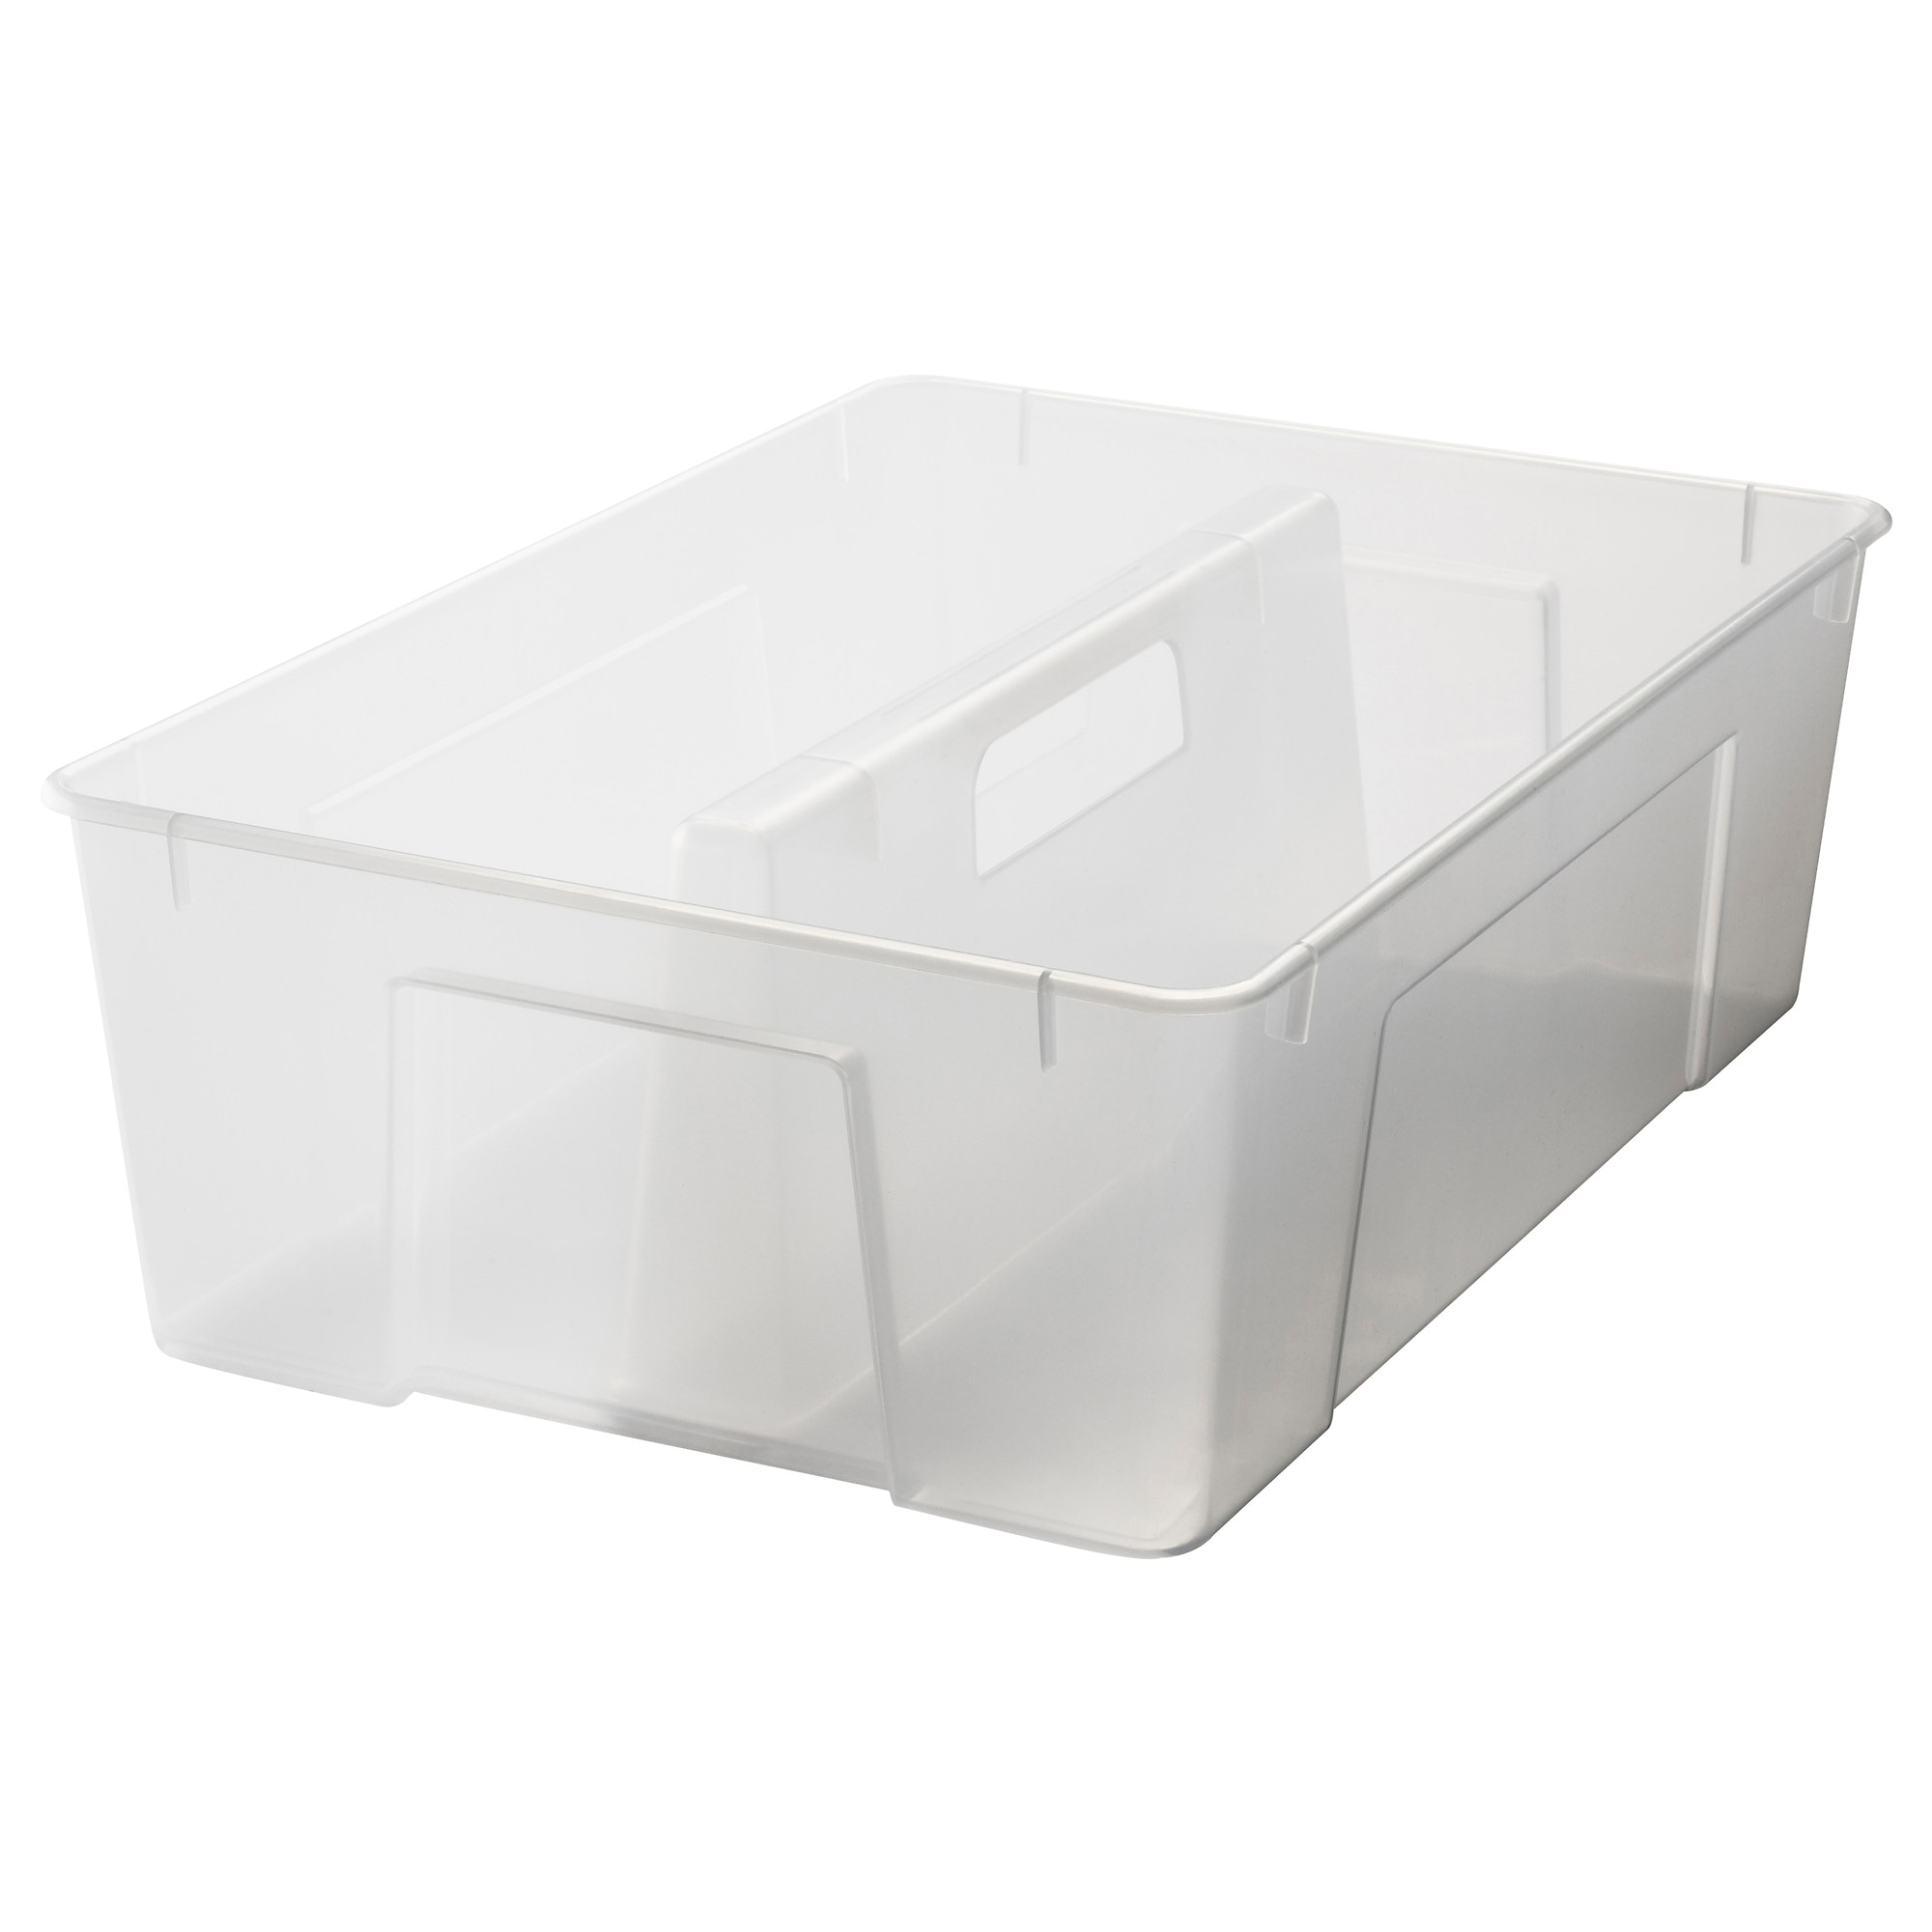 Officemax Plastic Storage Boxes Storage Category